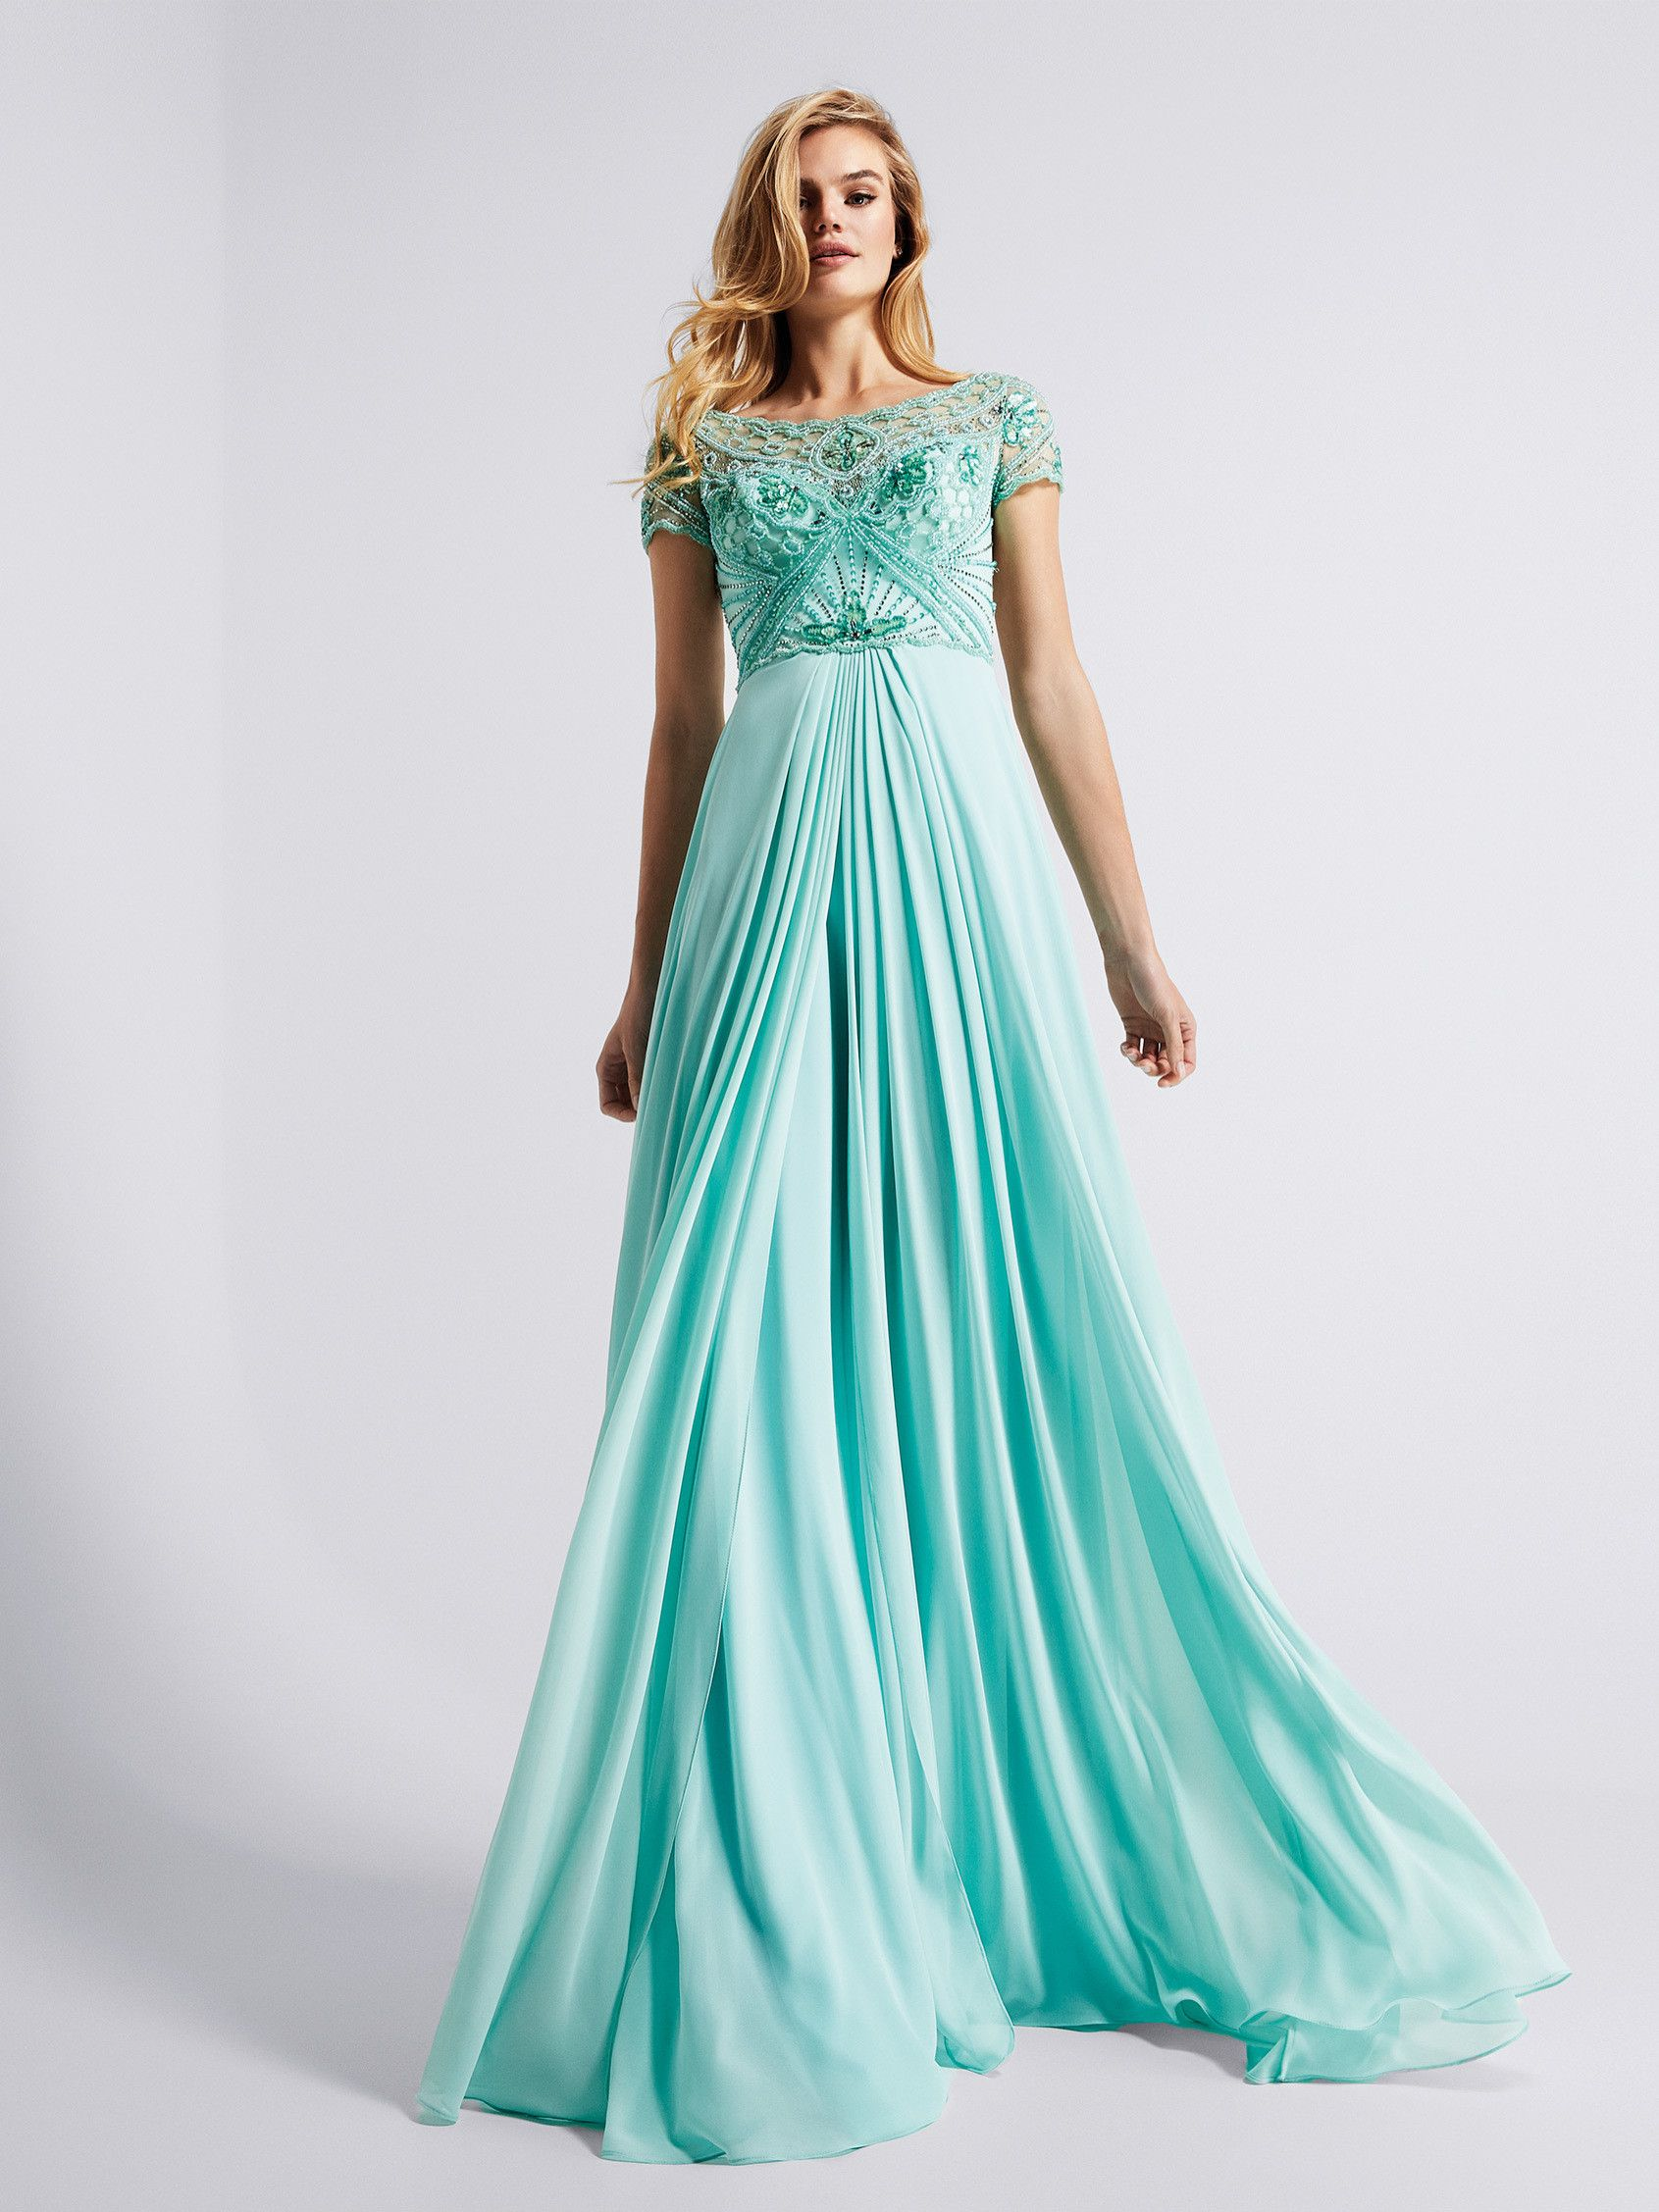 aab96d834d Gales: Exquisite flared cocktail dress with bejeweled bodice ...